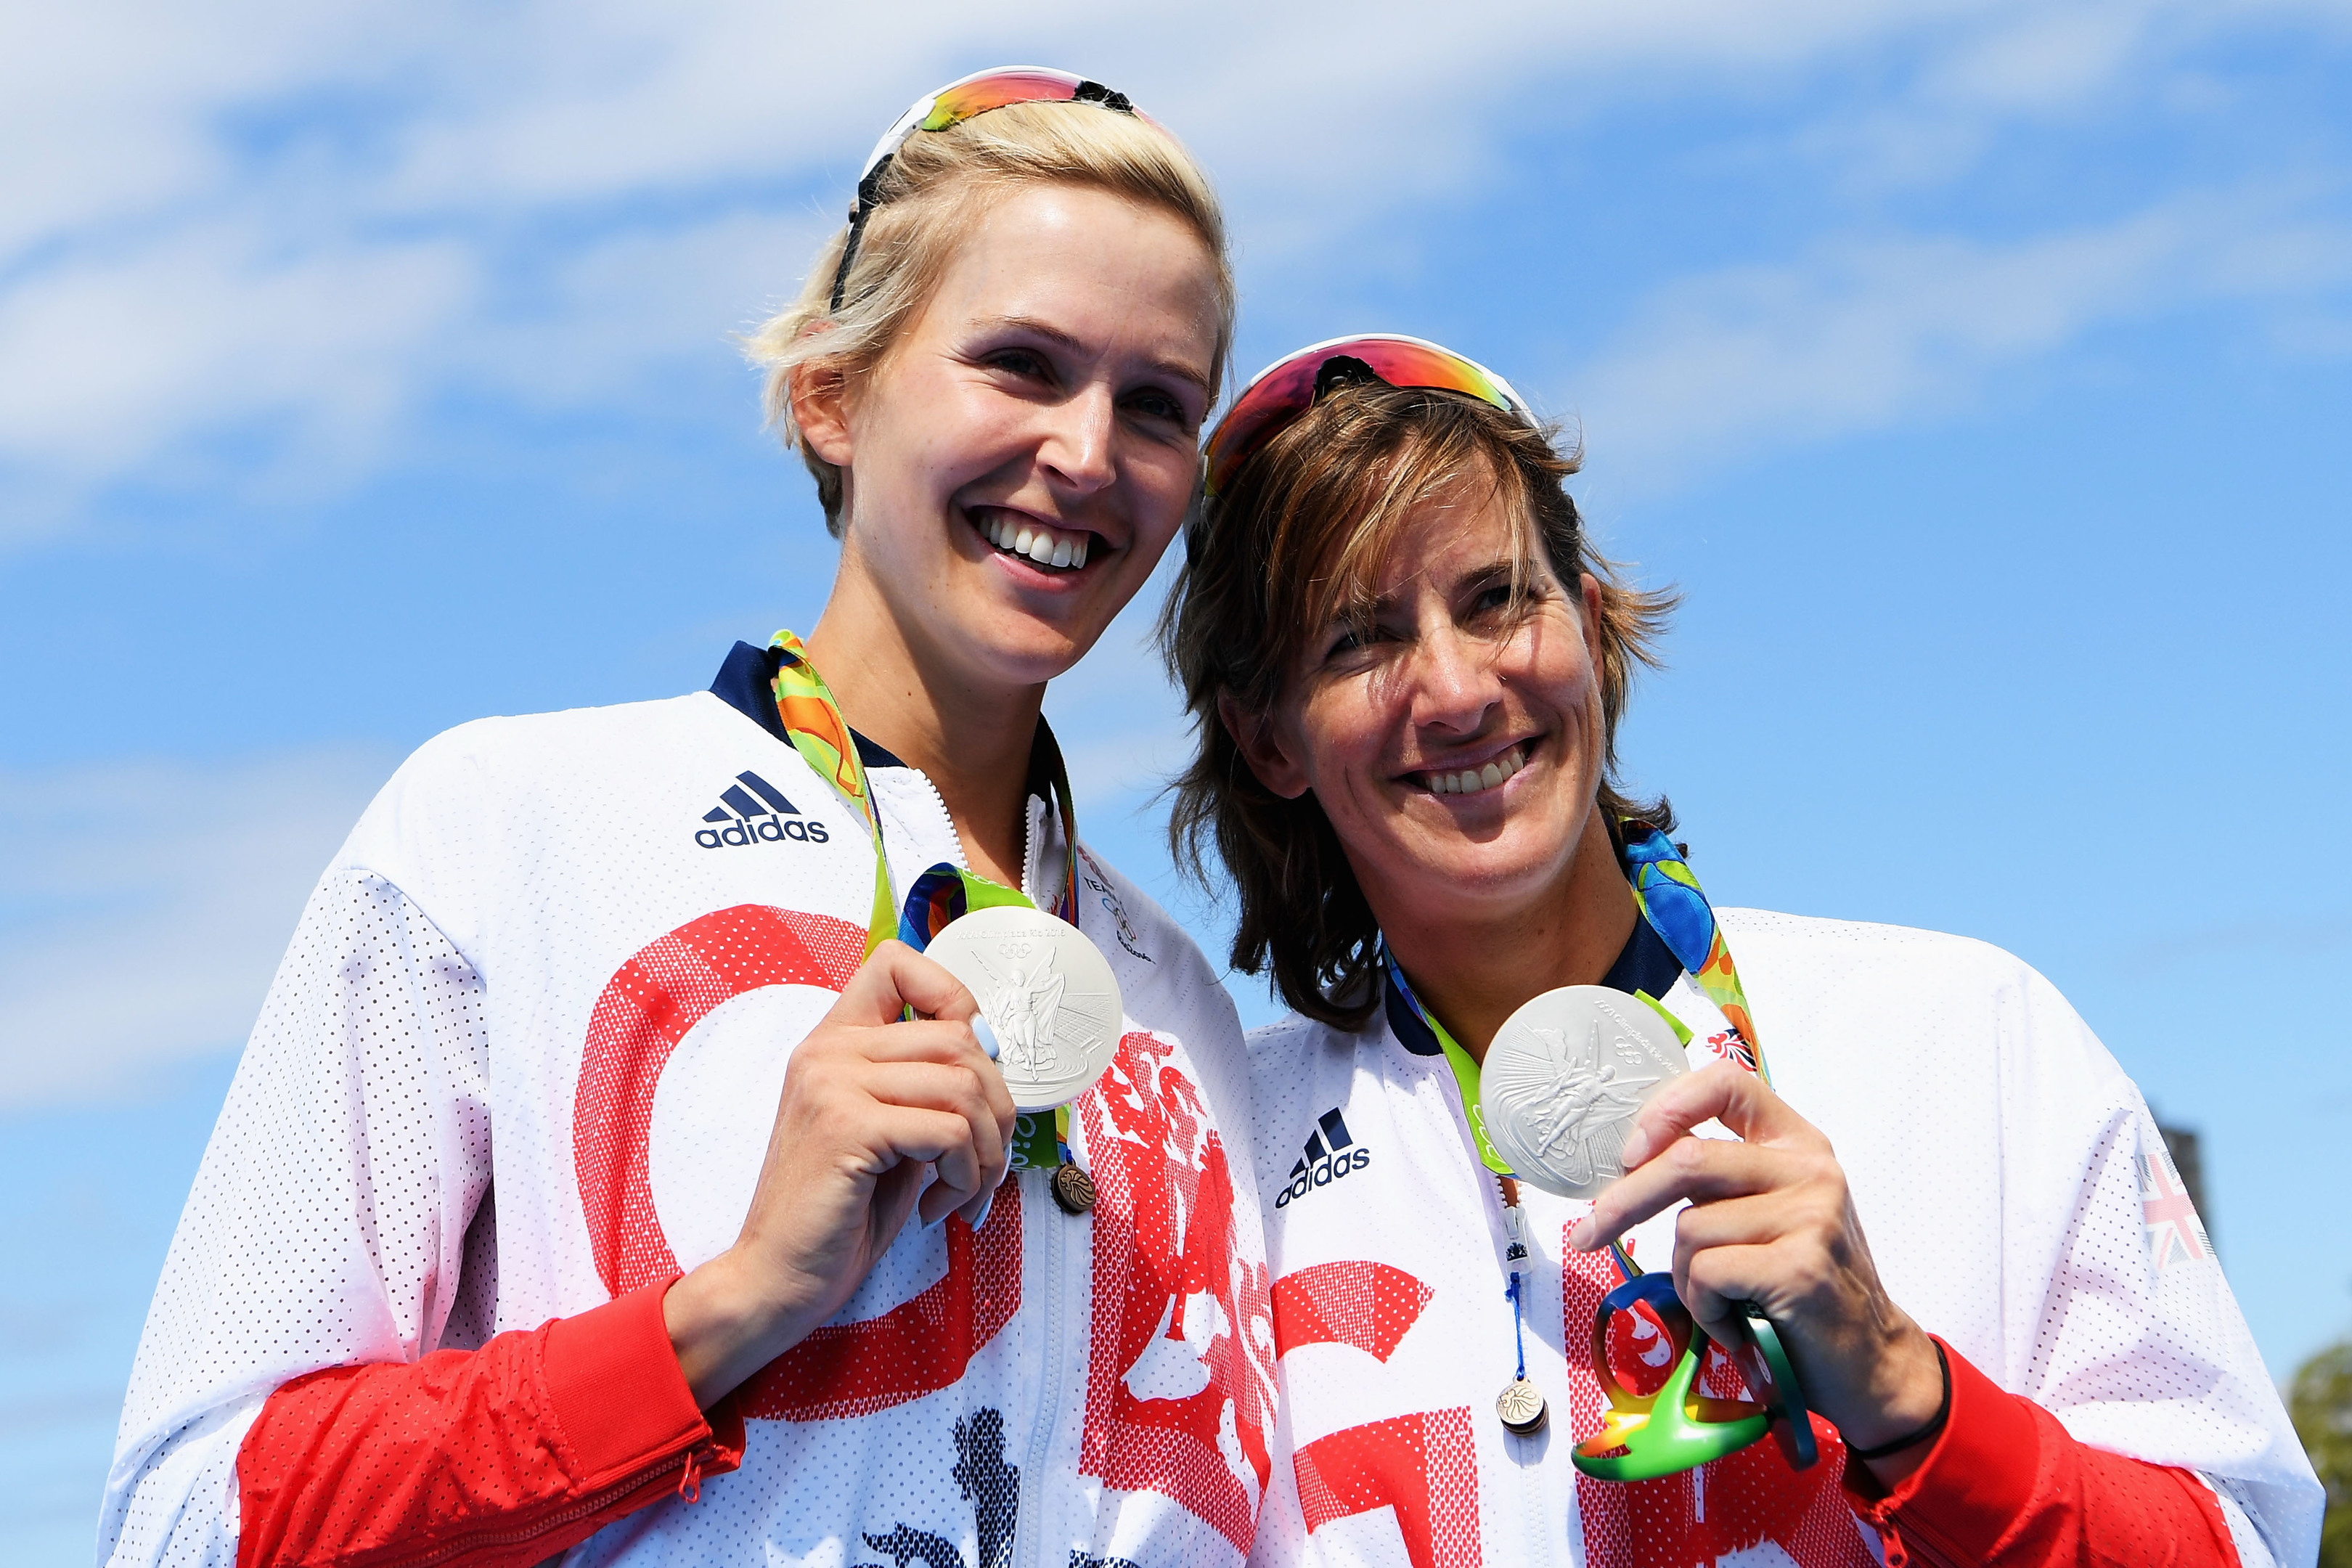 Victoria Thornley of Great Britain and Katherine Grainger of Great Britain celebrate with their silver medals after finishing second in the Women's Double Sculls Final A on Day 6 of the 2016 Rio Olympics at Lagoa Stadium on August 11, 2016 in Rio de Janeiro, Brazil.